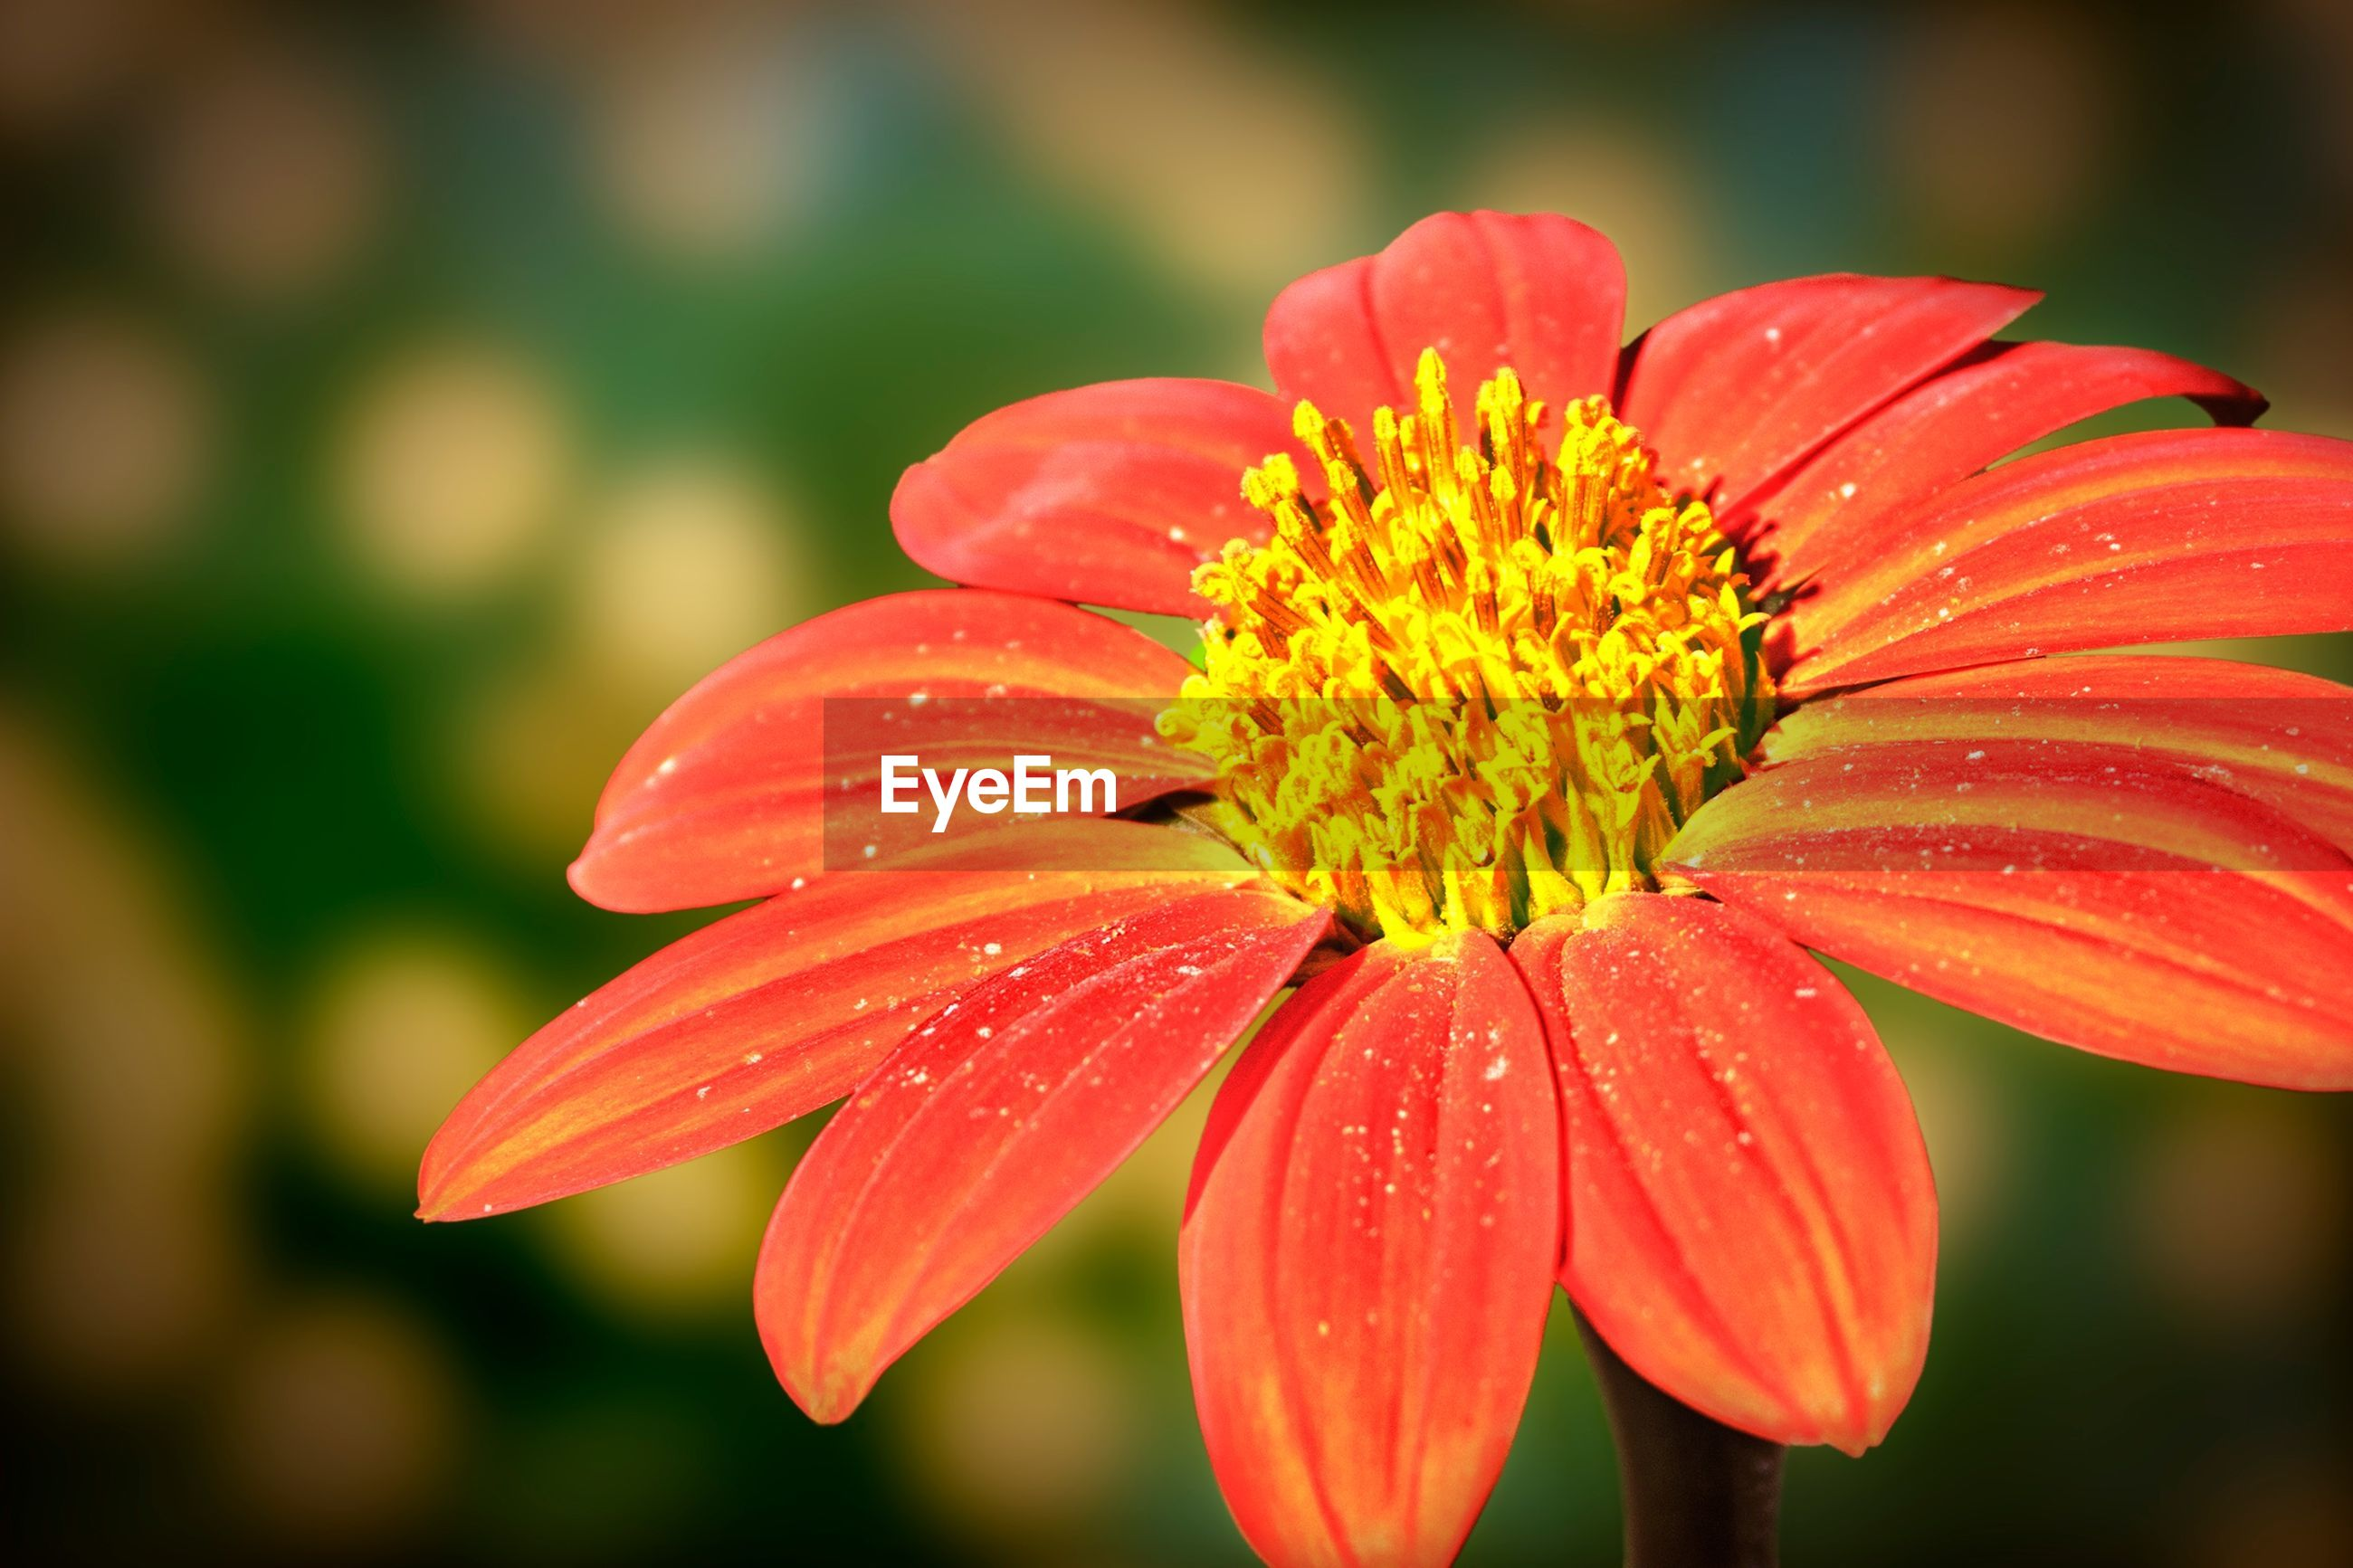 flower, petal, freshness, flower head, fragility, red, close-up, focus on foreground, beauty in nature, single flower, growth, pollen, blooming, drop, nature, water, wet, in bloom, stamen, plant